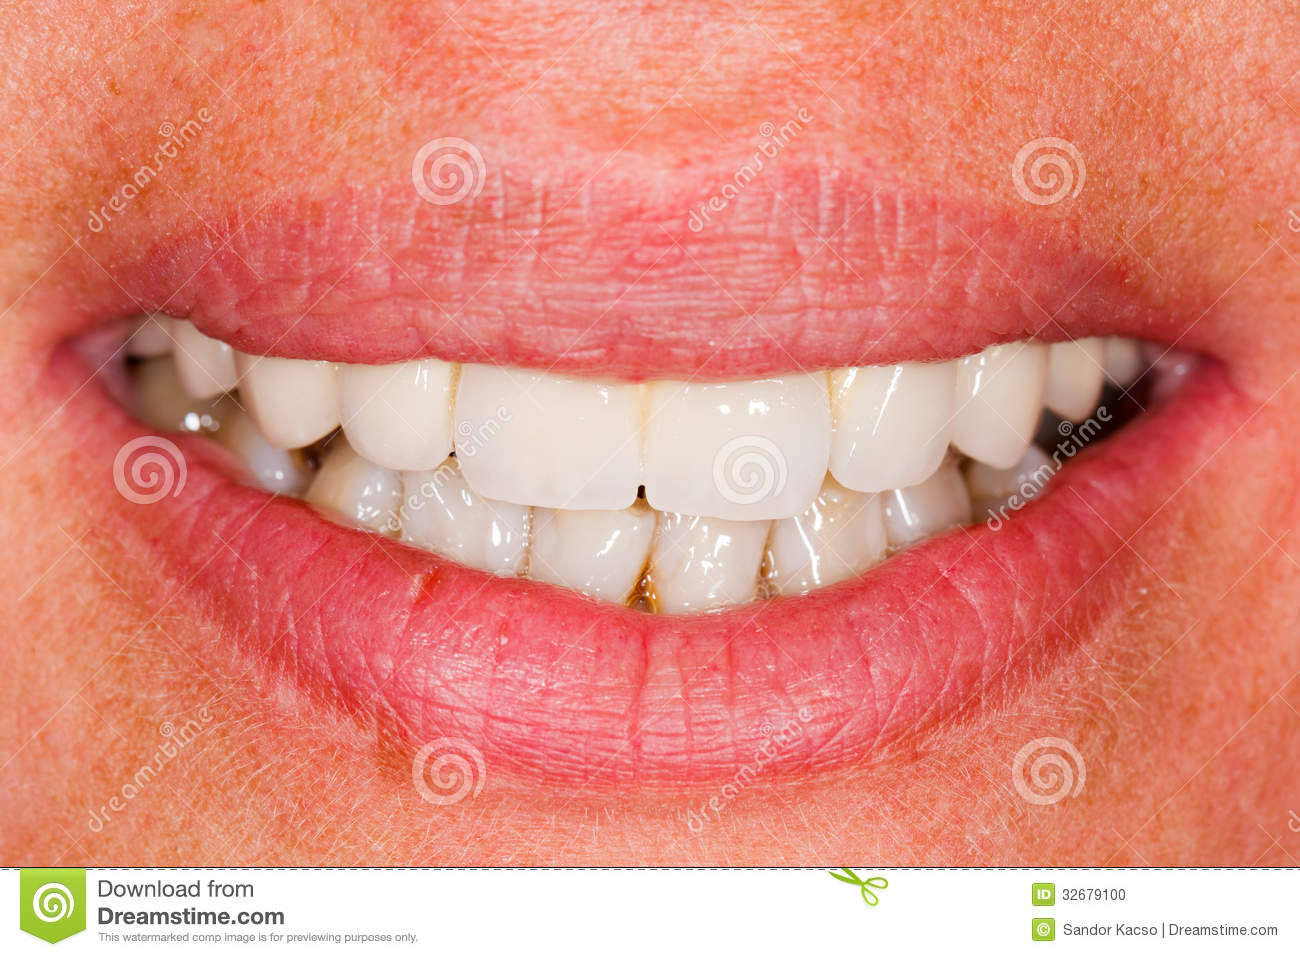 Dents En Porcelaine Dents De Porcelaine Dans La Bouche Humaine Photo Stock Image Du